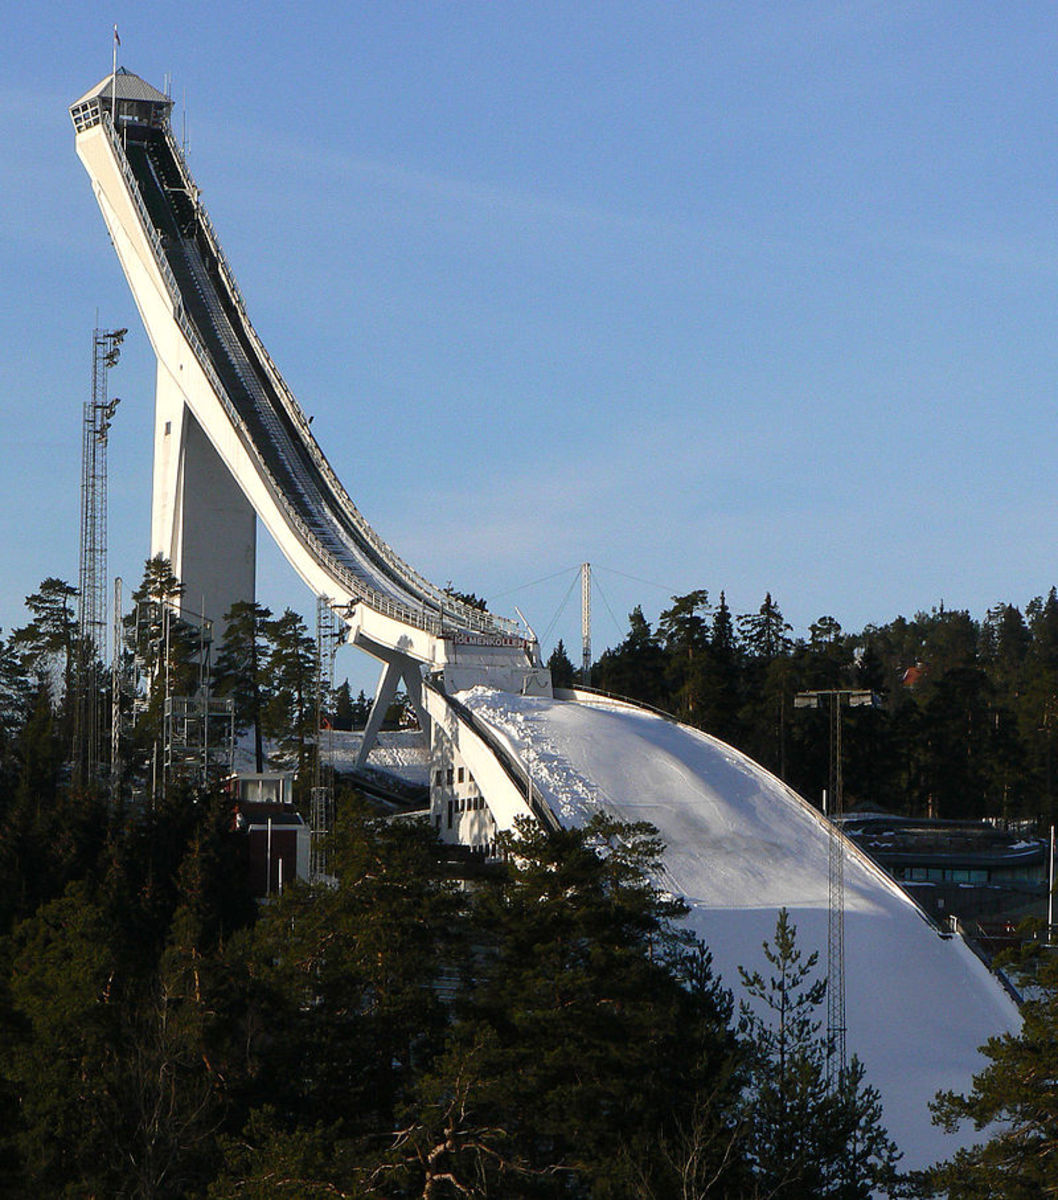 It takes courage and skill to tackle the Holmenkollen ski jump in Norway.